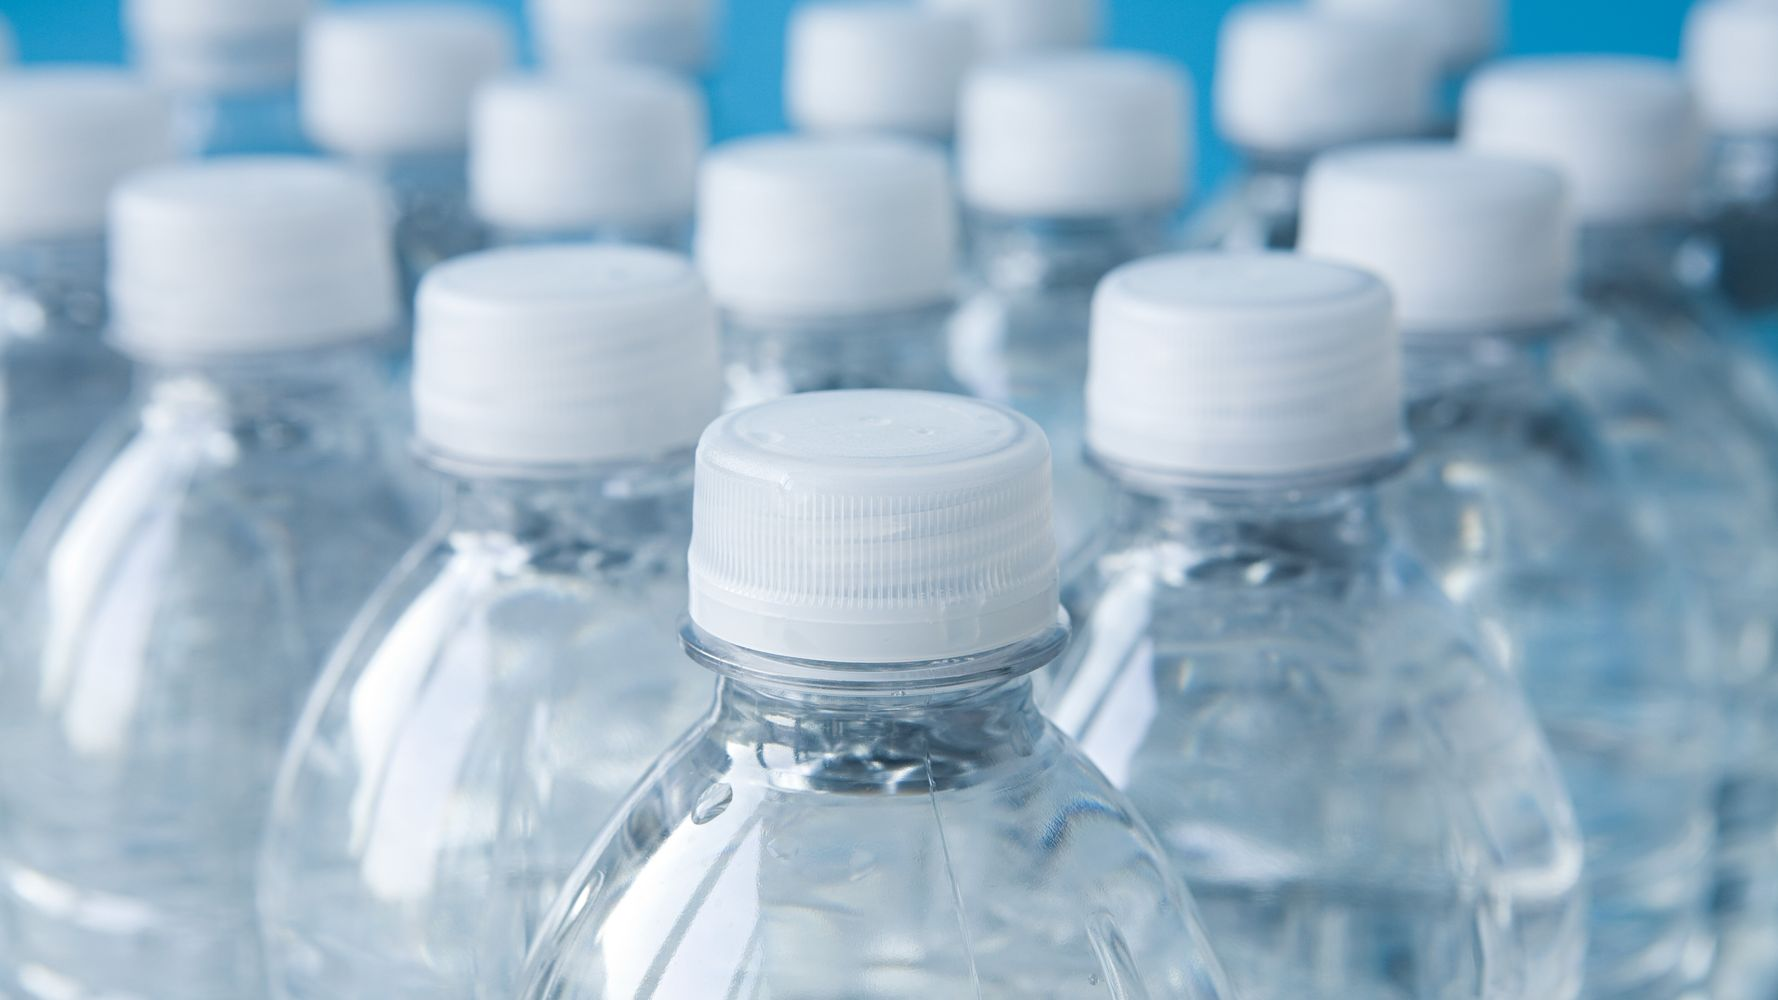 Study Finds High Arsenic Levels In Bottled Water At Target